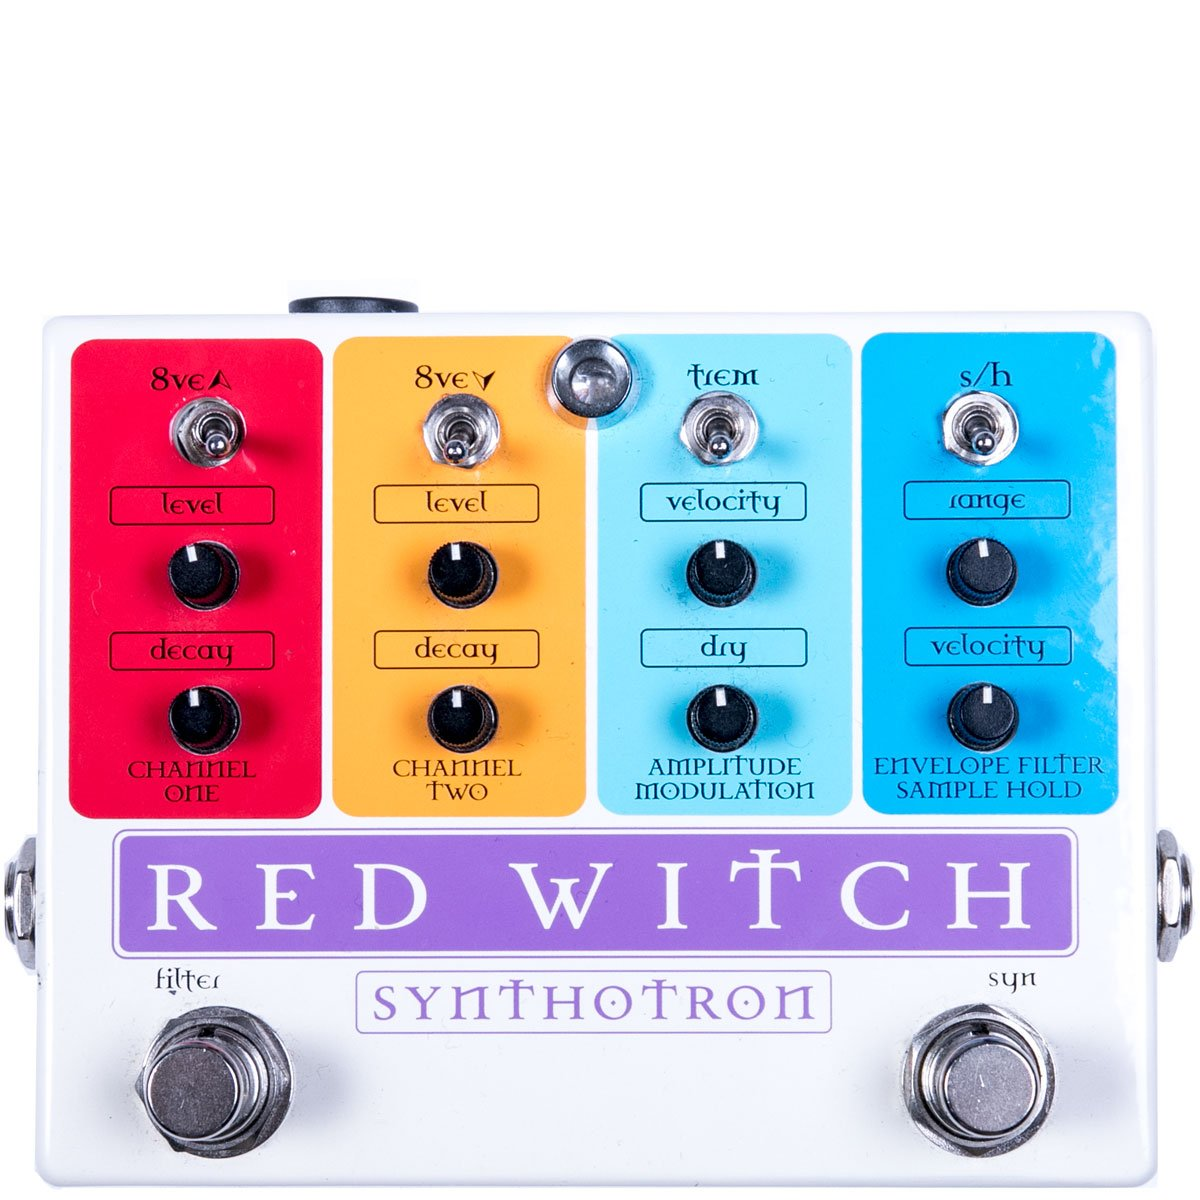 Used Red Witch Synthotron - Filter / Synthesiser / Octaver